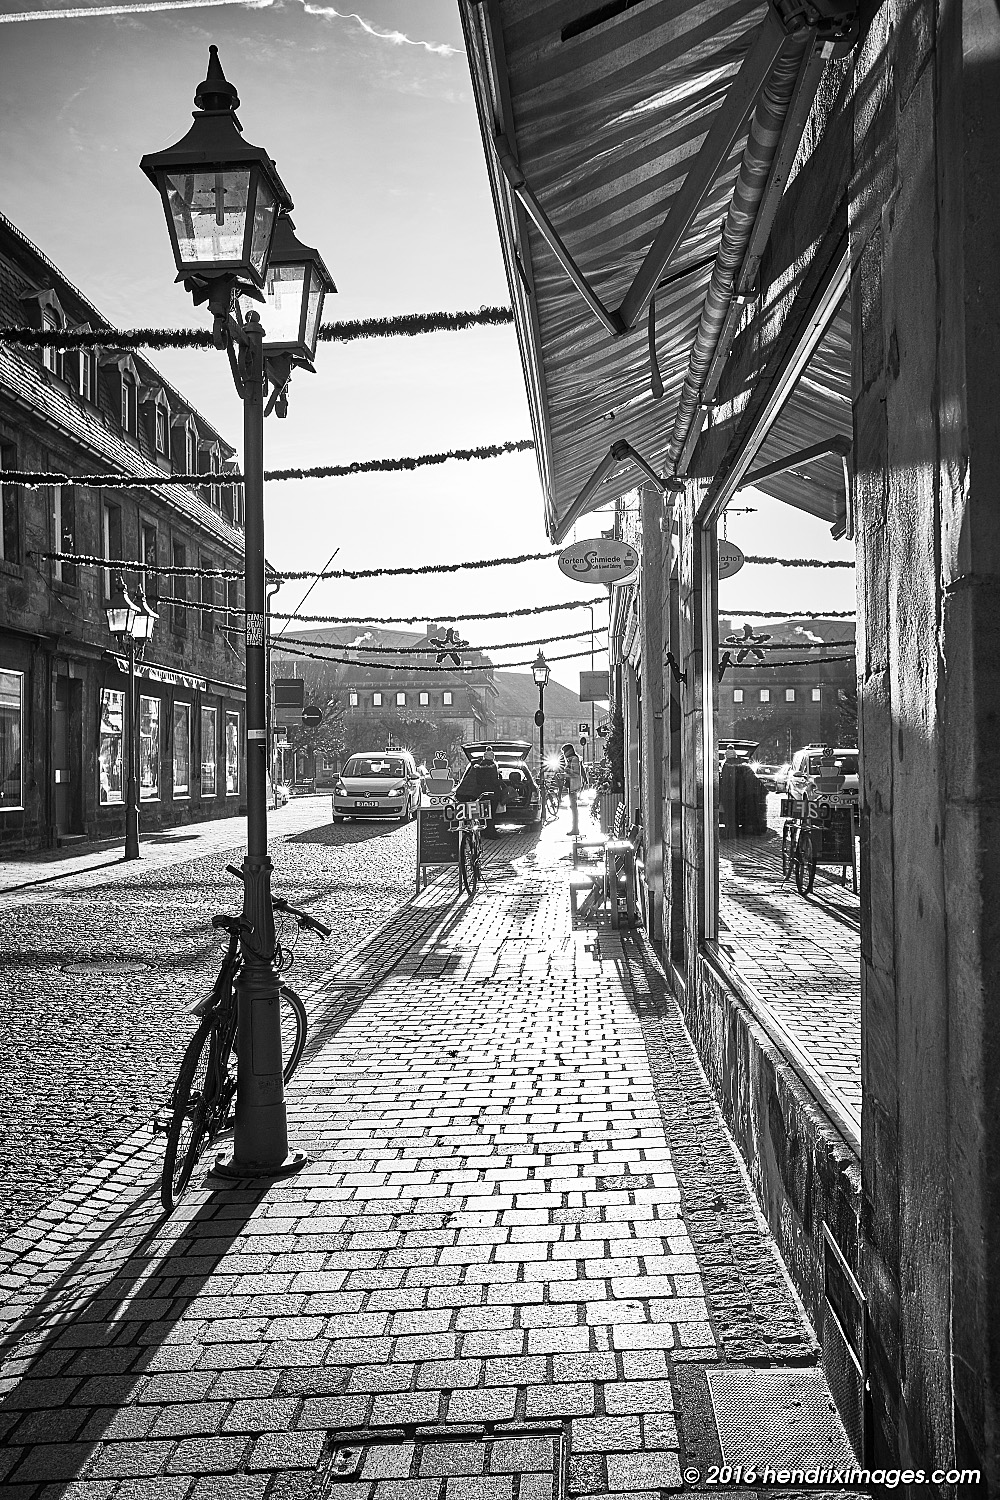 Street in the winter sun, captured by Fuji XF 23 mm f/2 WR on X-Pro 2, developed in CO Pro 10